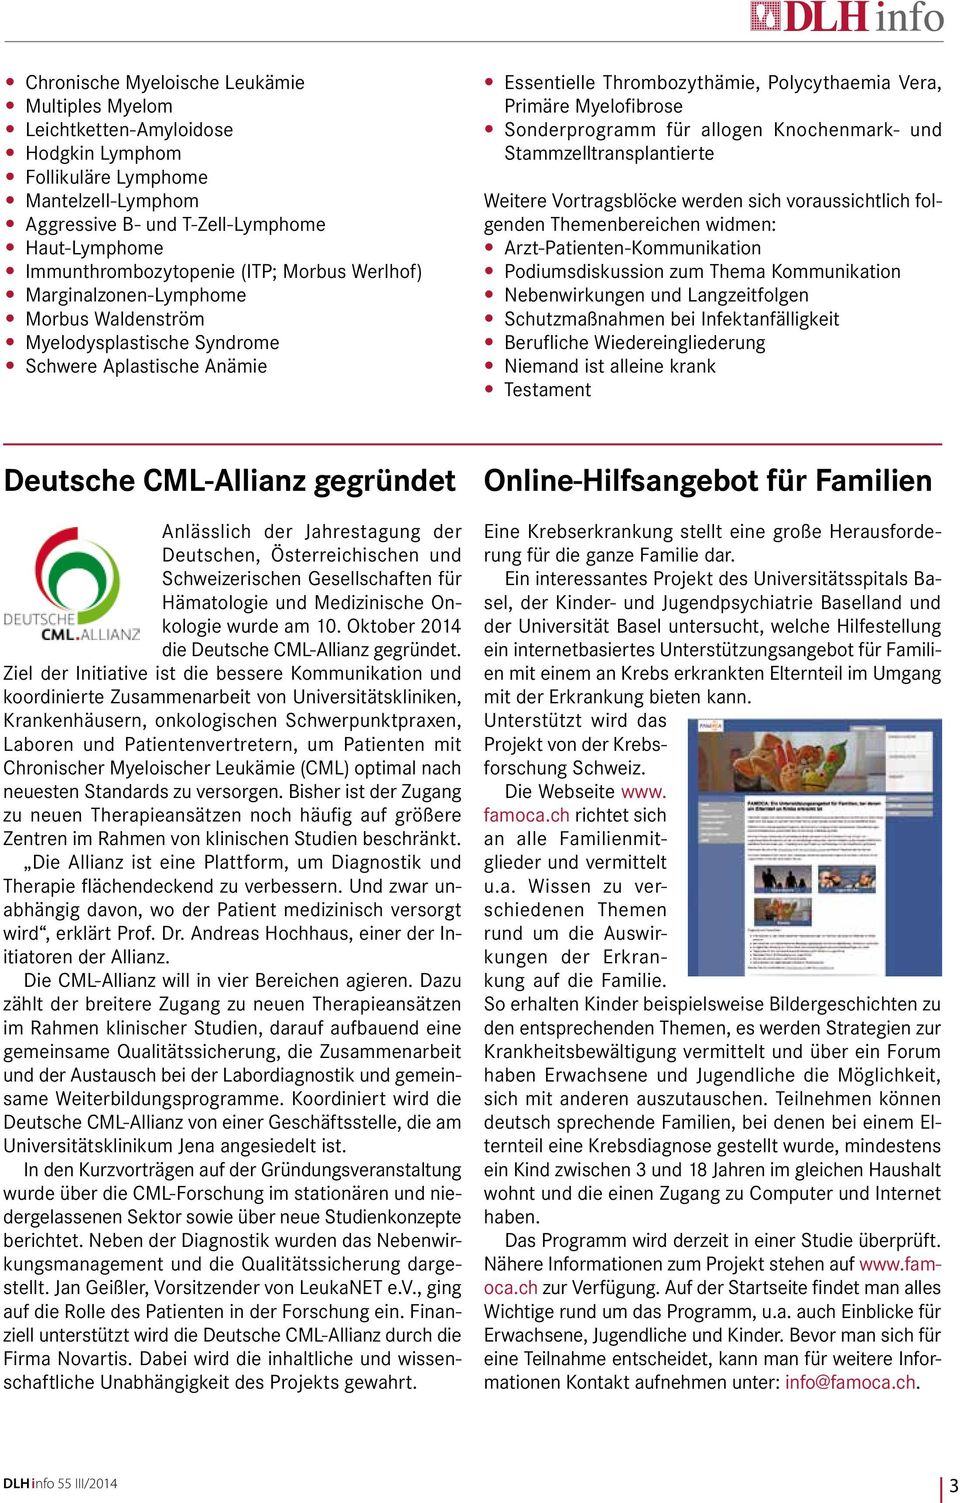 deutsche cml allianz